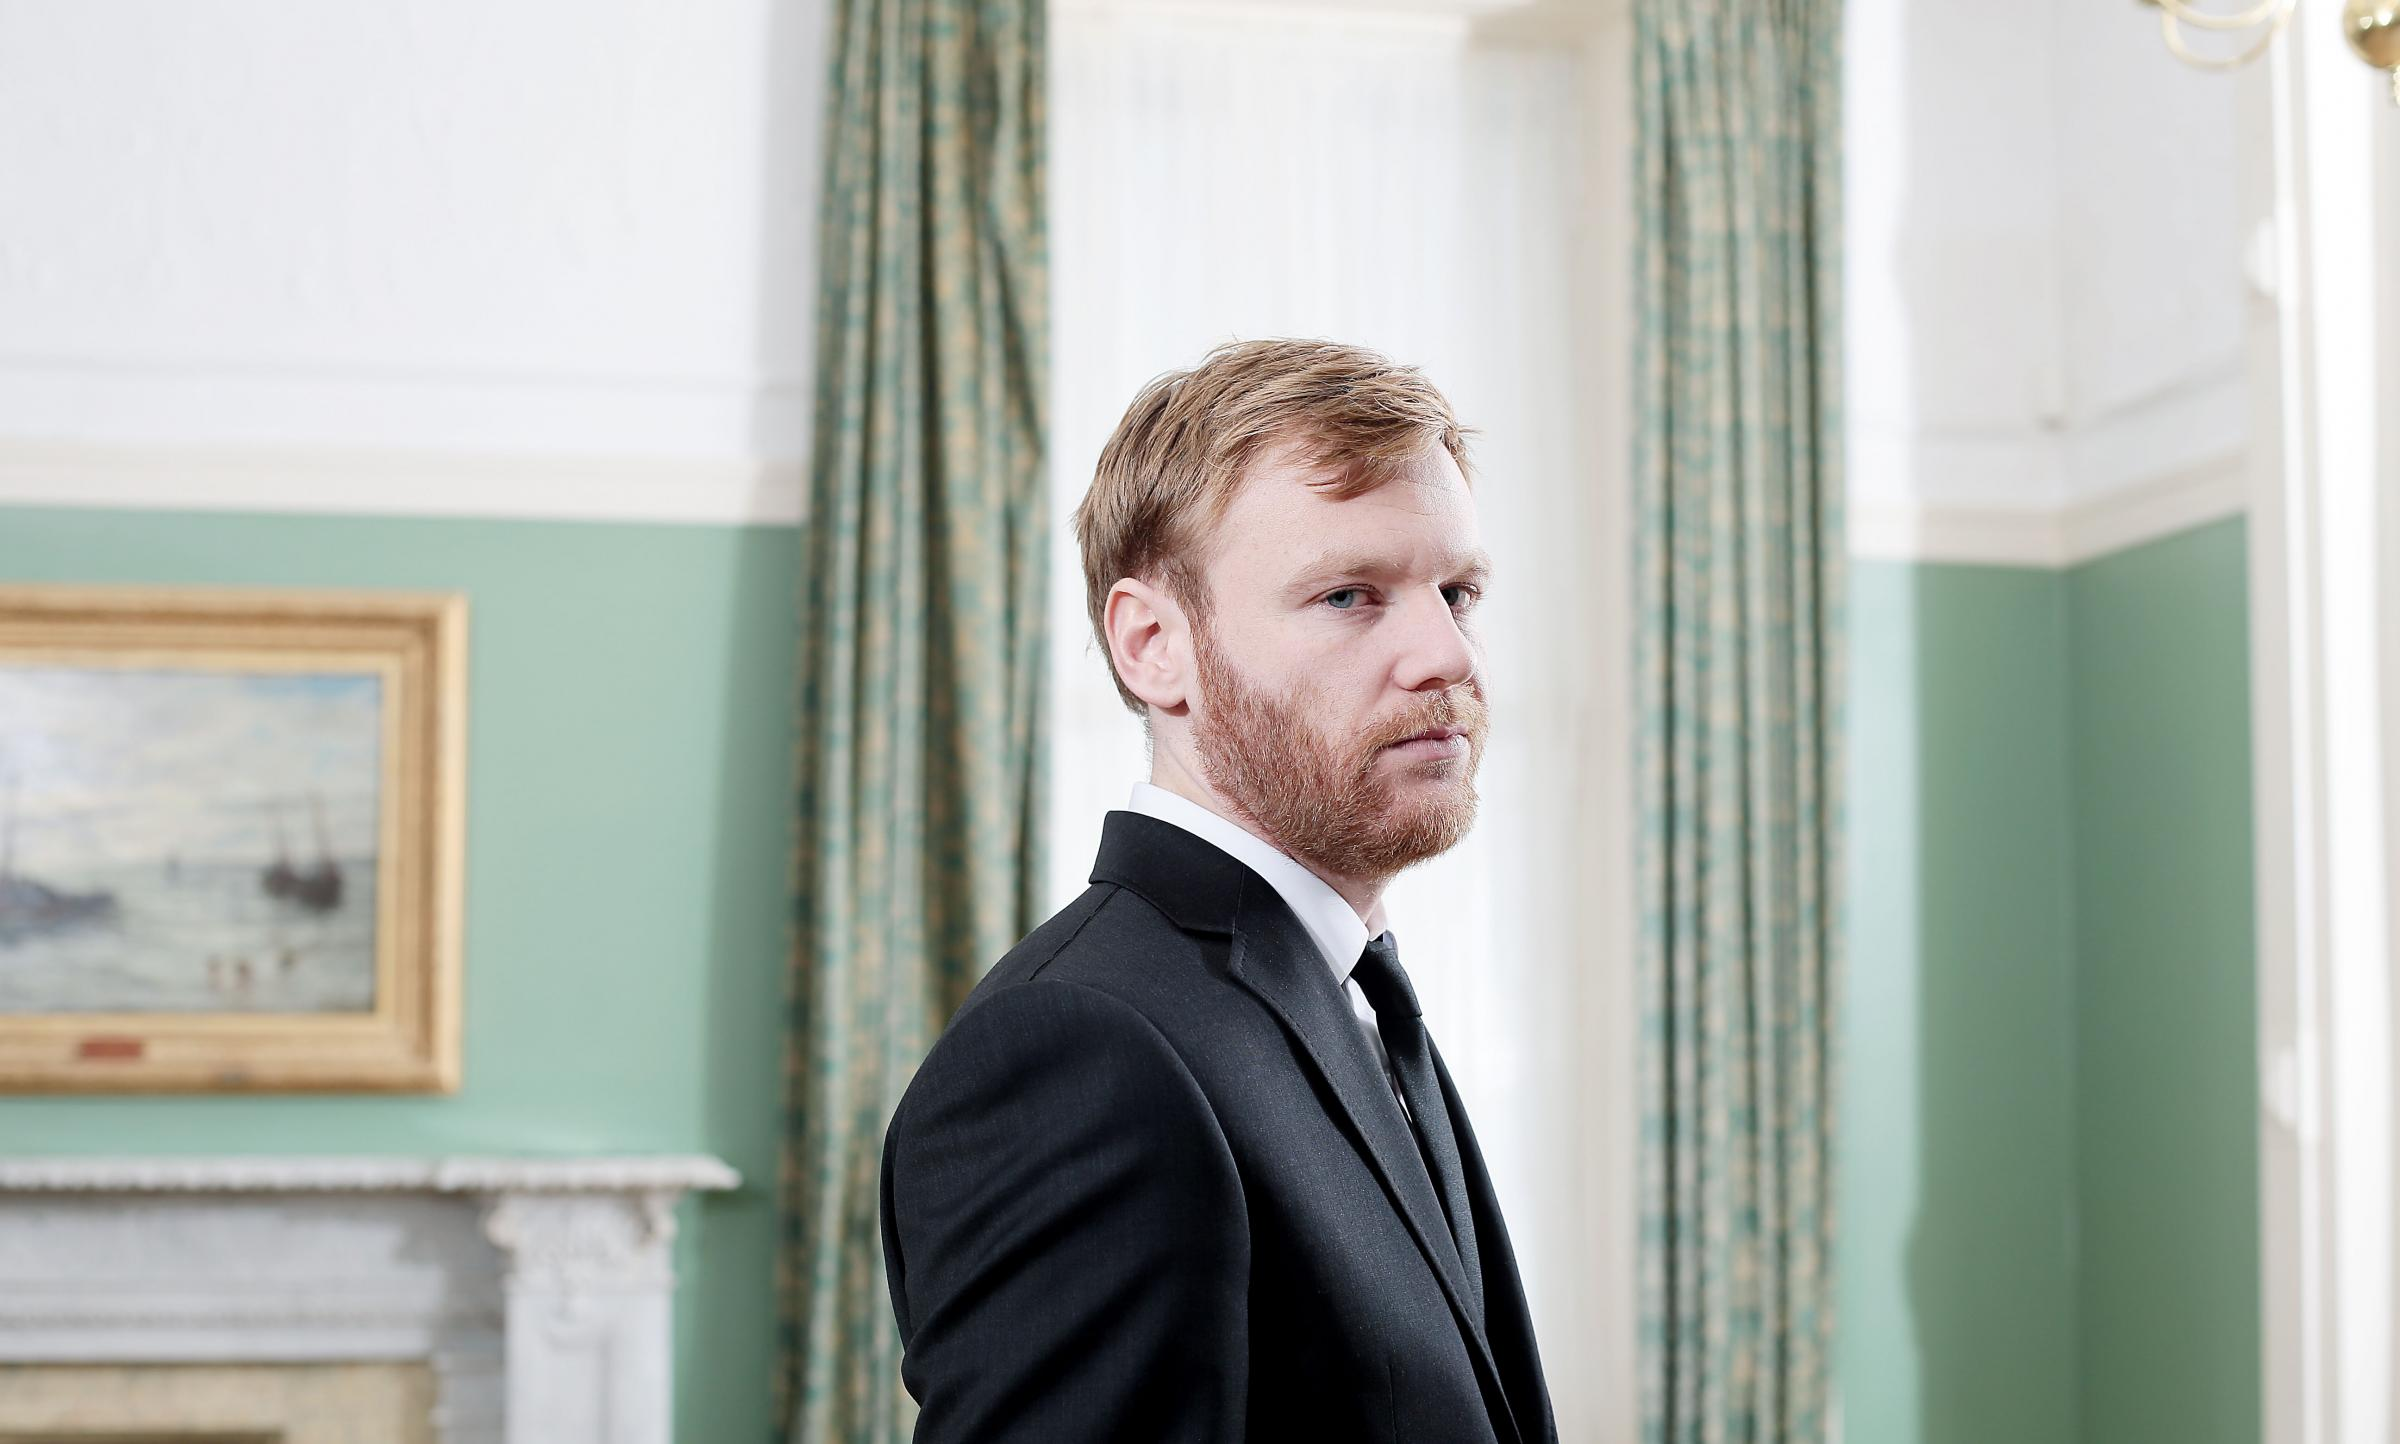 brian gleeson radisson blubrian gleeson actor, brian gleeson assassin's creed, brian gleeson twitter, brian gleeson instagram, brian gleeson facebook, brian gleeson, brian gleeson imdb, brian gleeson wiki, brian gleeson radisson blu, brian gleeson radisson, brian gleeson auctioneer, brian gleeson jewellers, brian gleeson love hate, brian gleeson girlfriend, brian gleeson horse racing, brian gleeson rebellion, brian gleeson actor love hate, brian gleeson afl, brian gleeson consulting, brian gleeson st kilda